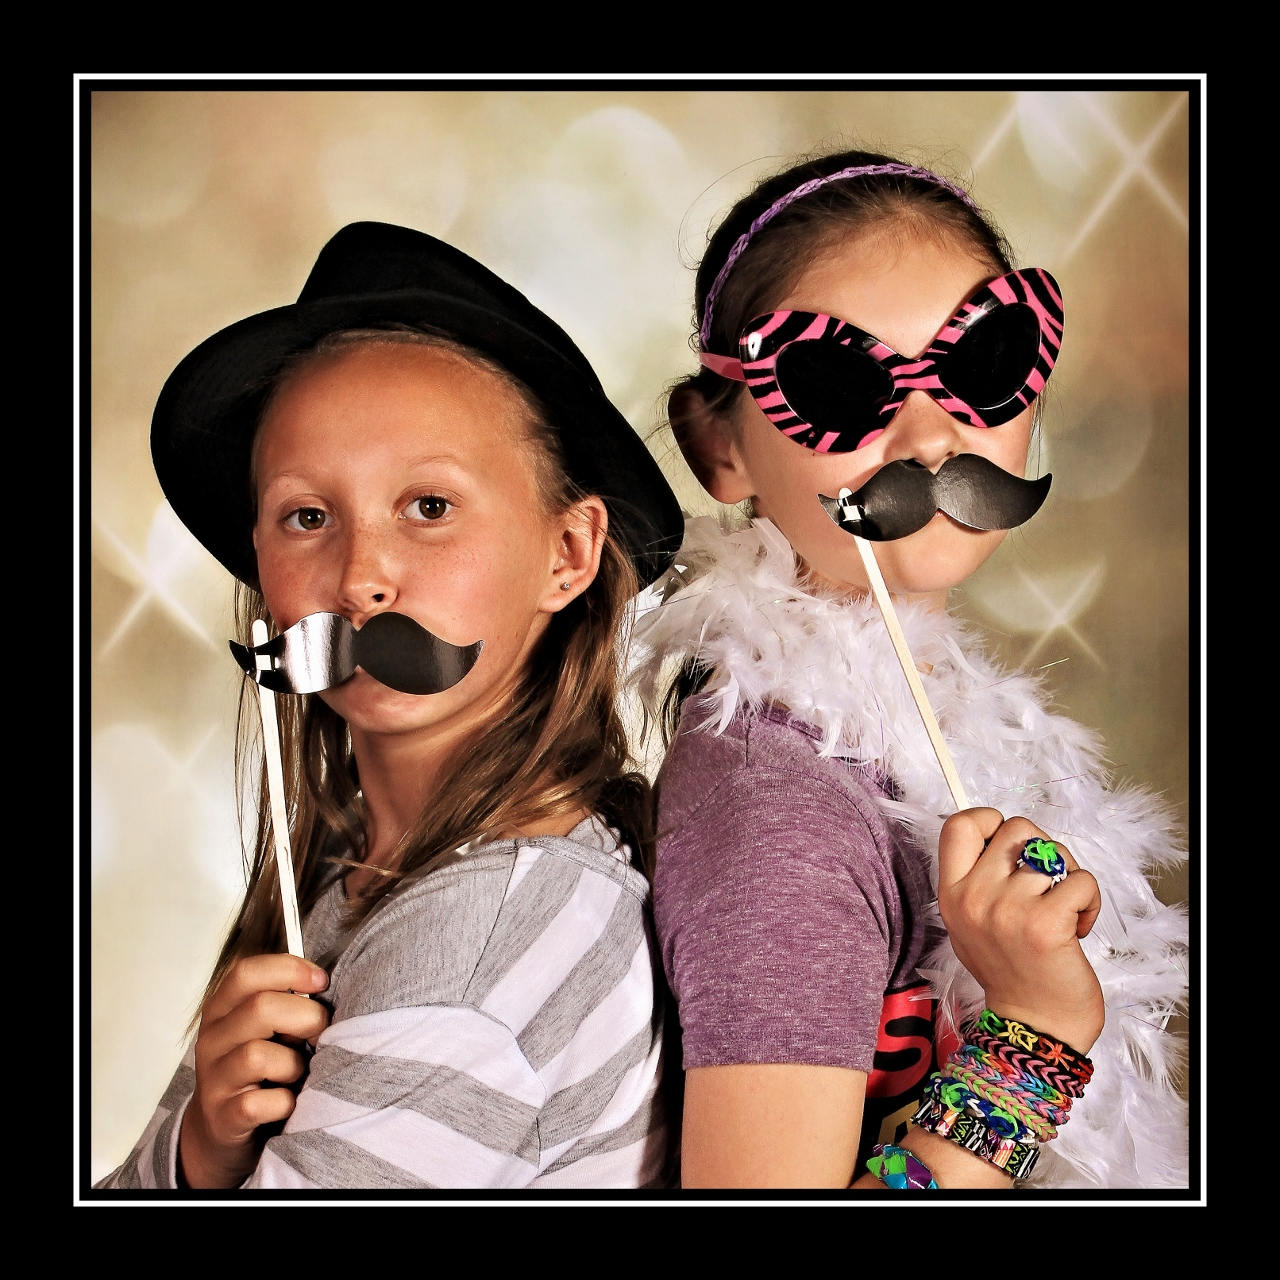 Photo Booth Fun, Santa Barbara Children's Photographer, Family Photographer in Santa Barbara, Cute Kids Photography in Santa Barbara